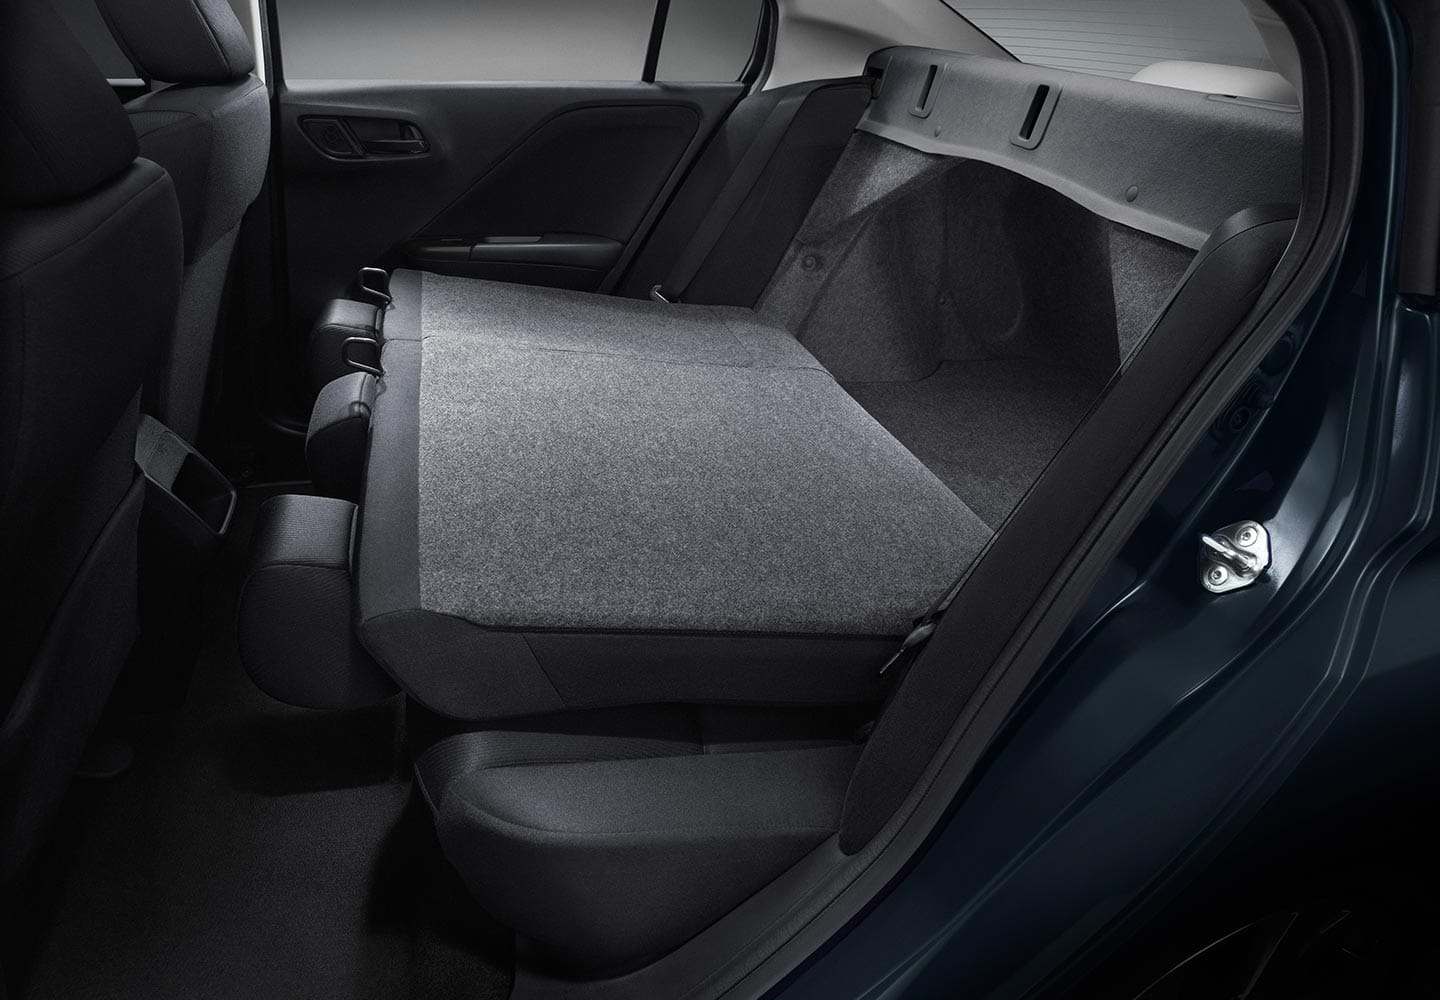 SPLIT-FOLD REAR SEATS